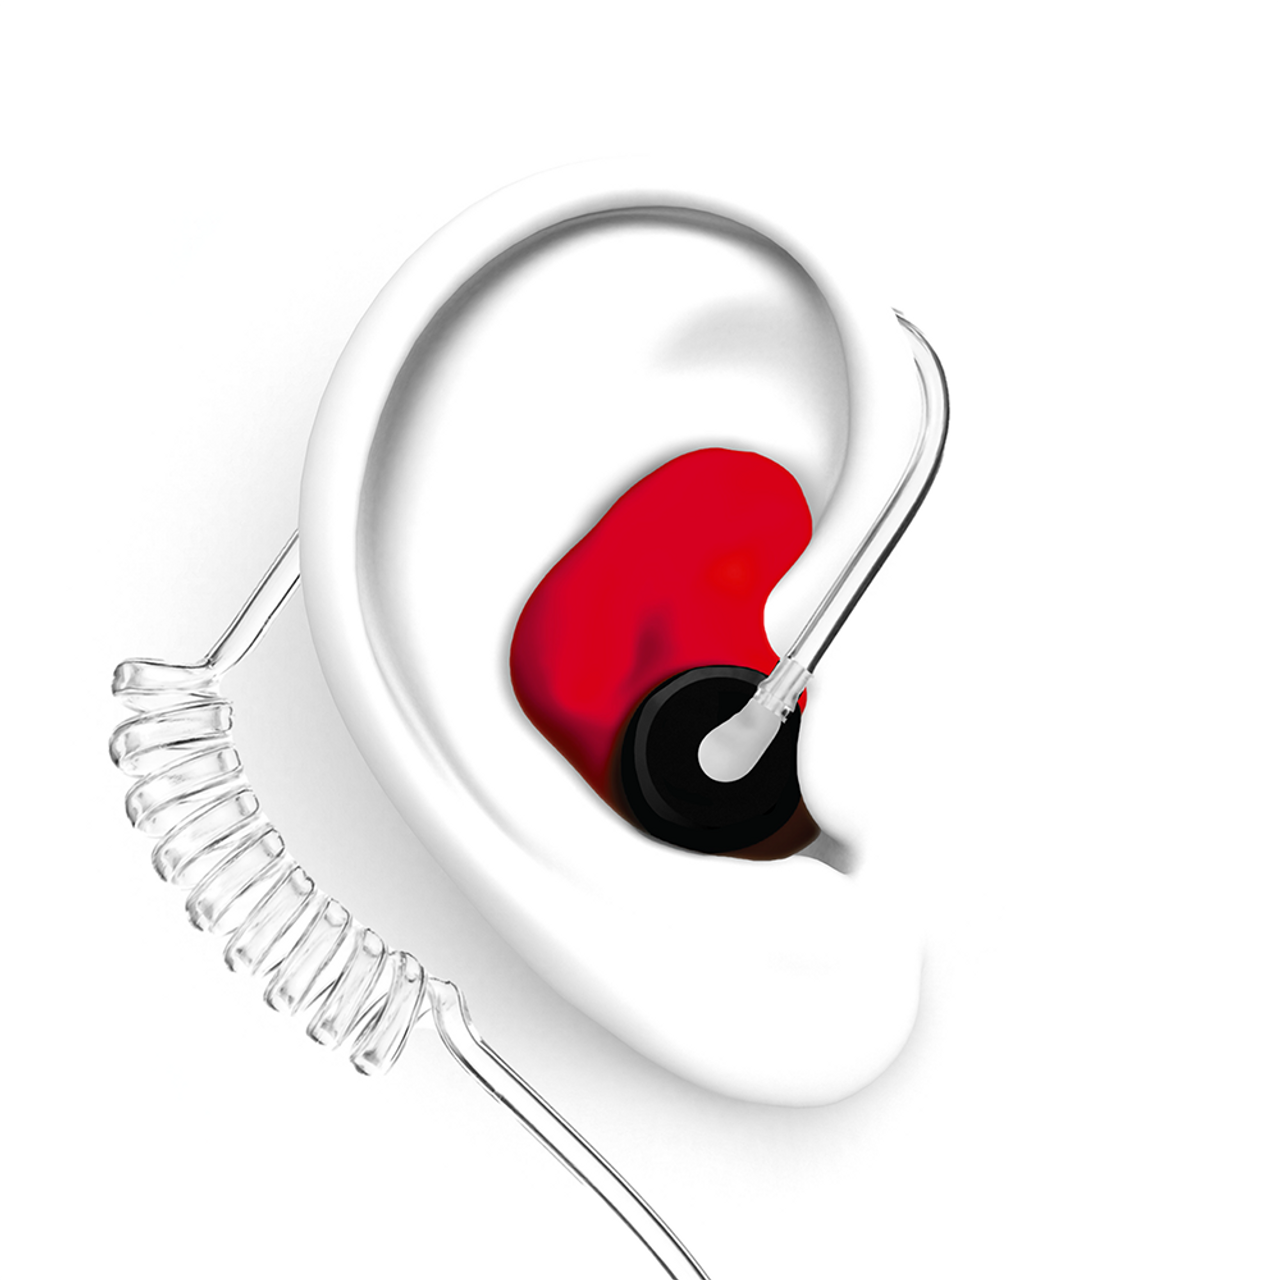 DECIBULLZ Red Custom Earplug for Two Way Radio Headsets